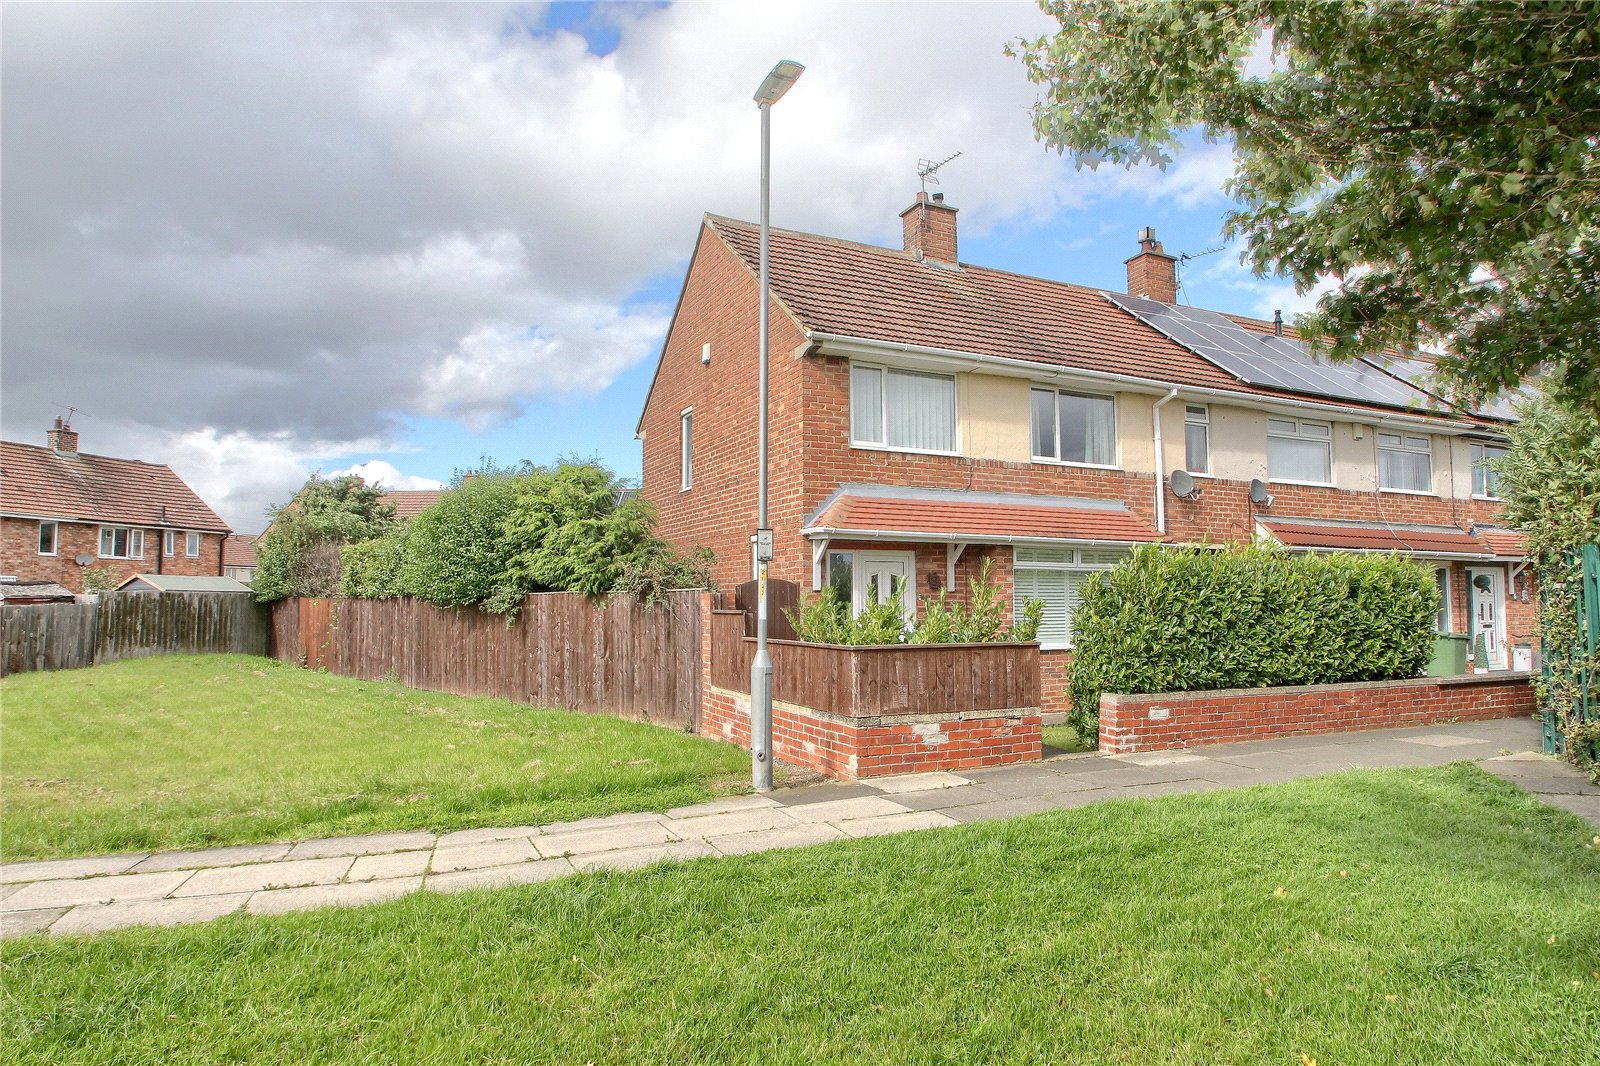 3 bed house for sale in Langham Walk, Fairfield 1